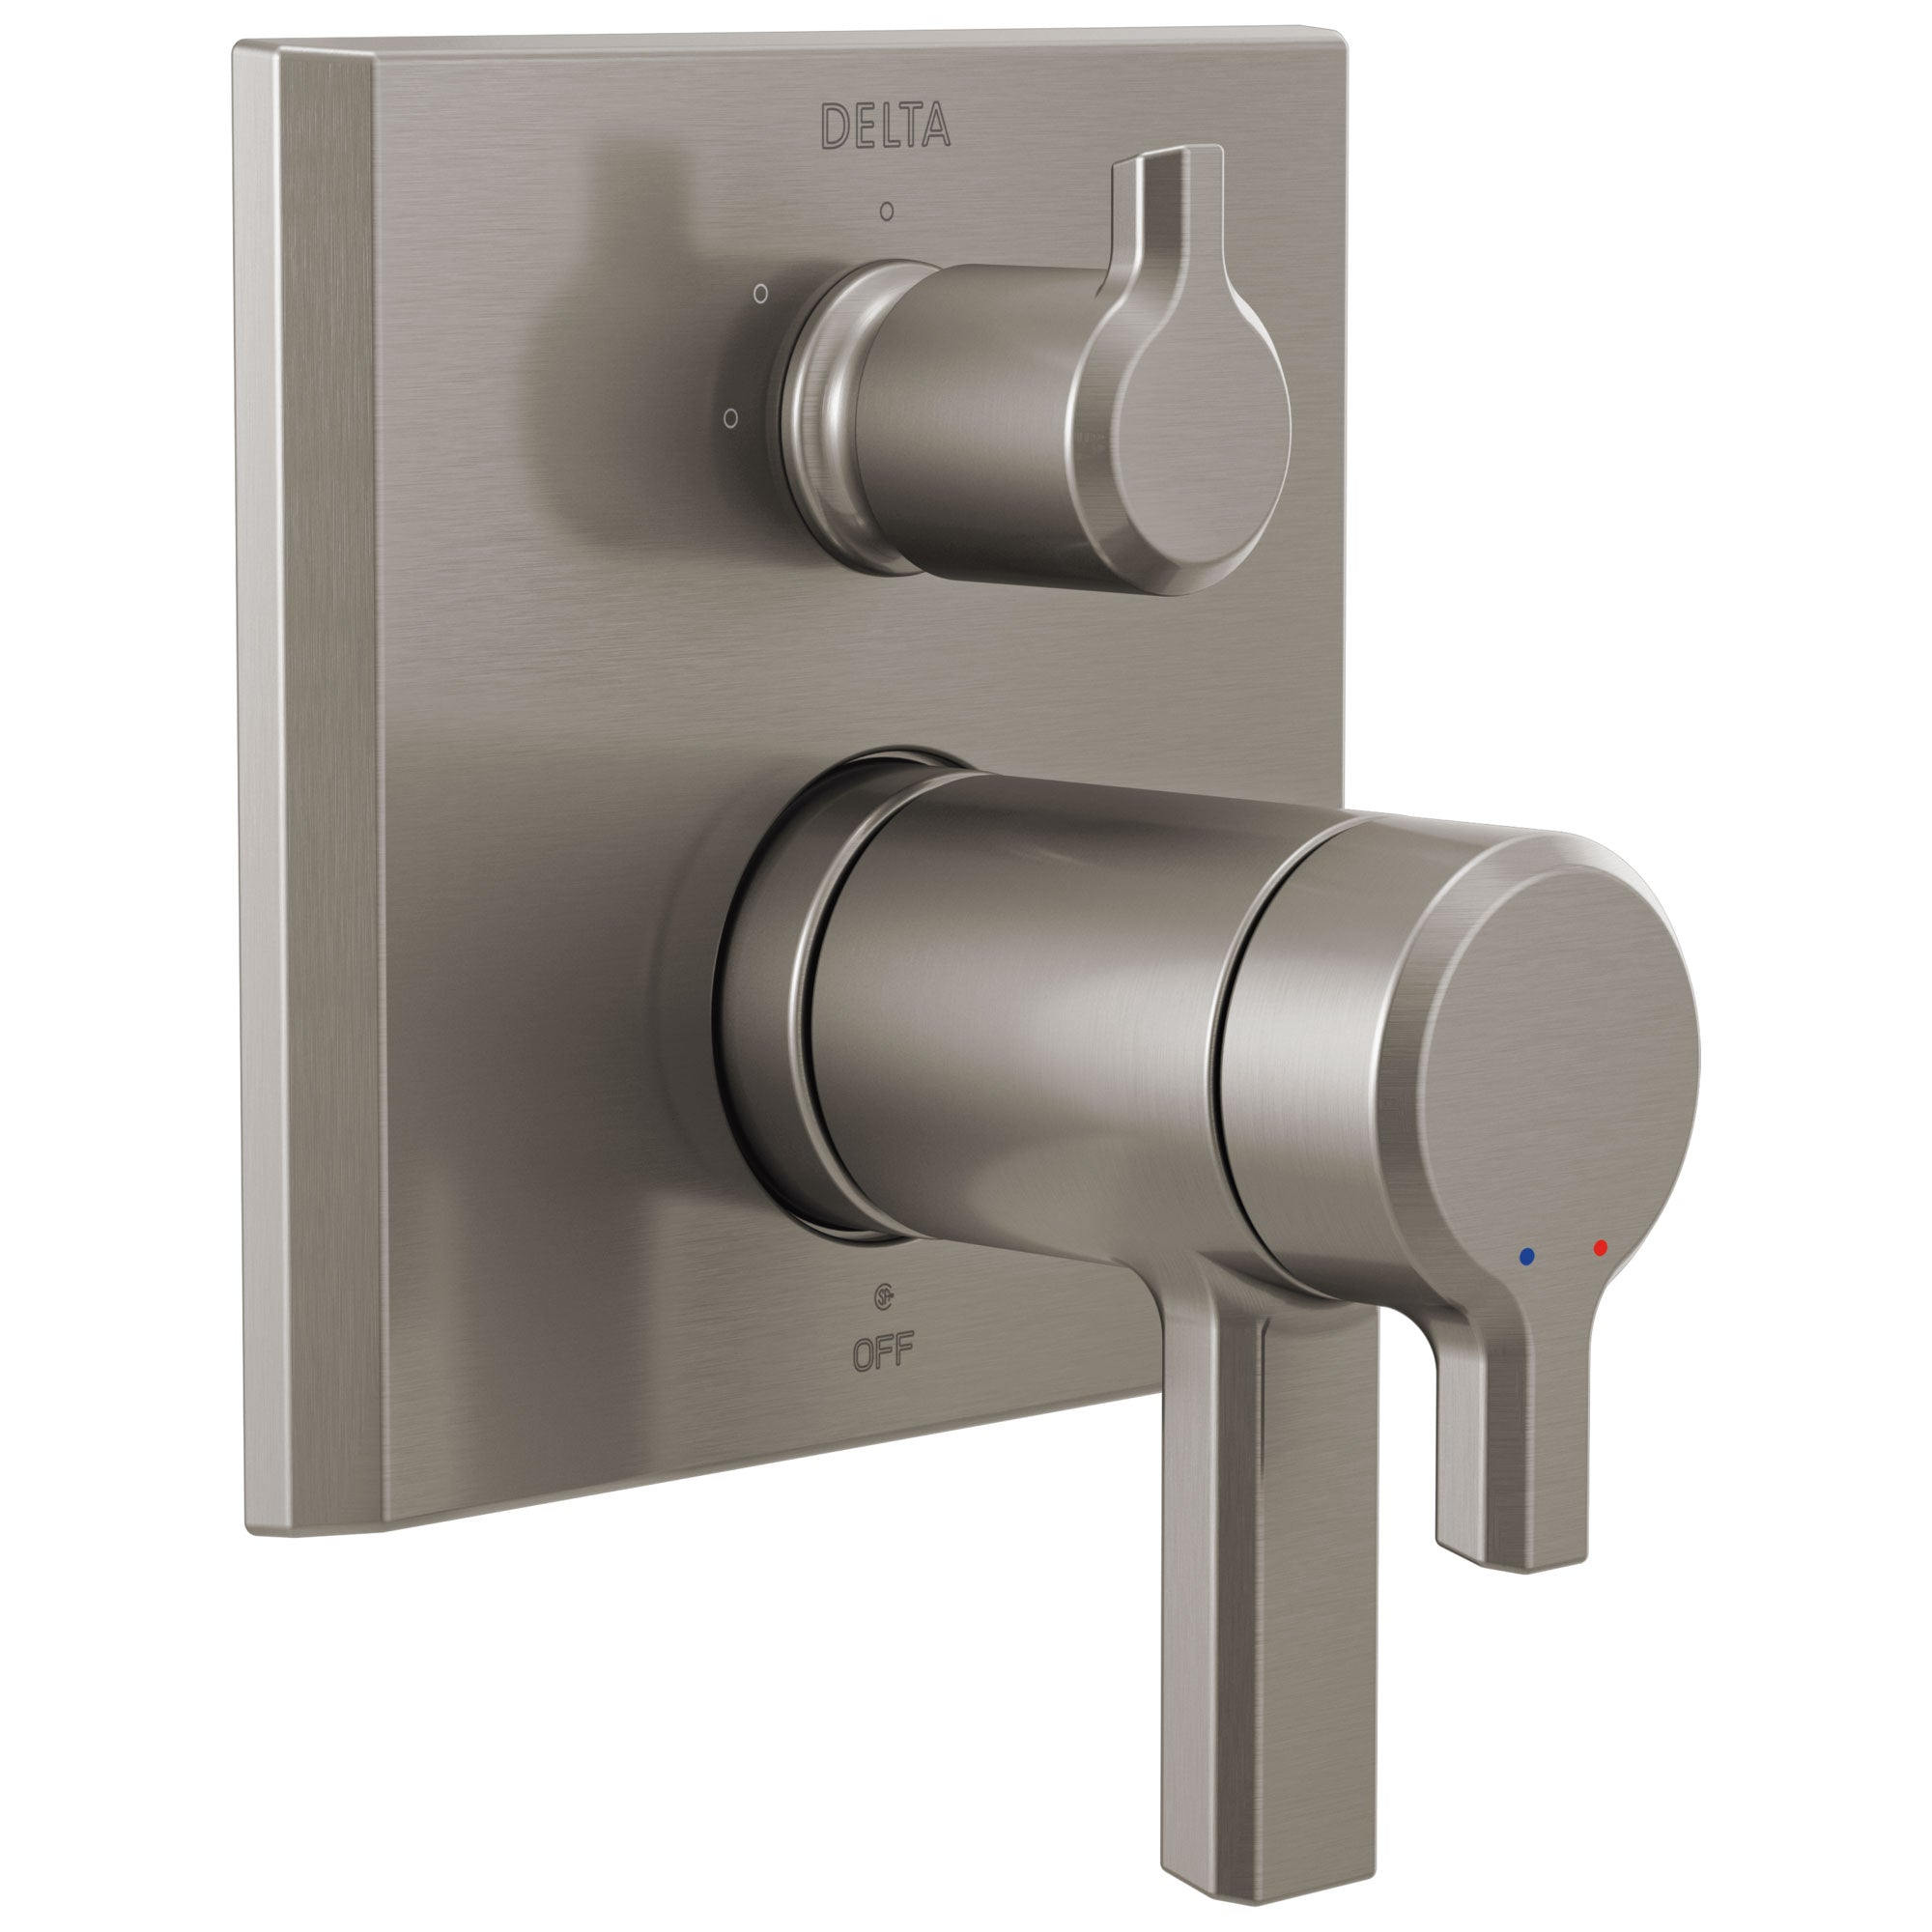 Delta Pivotal Modern Stainless Steel Finish Thermostatic Shower System Control with 3-Setting Integrated Diverter Includes Valve and Handles D3675V